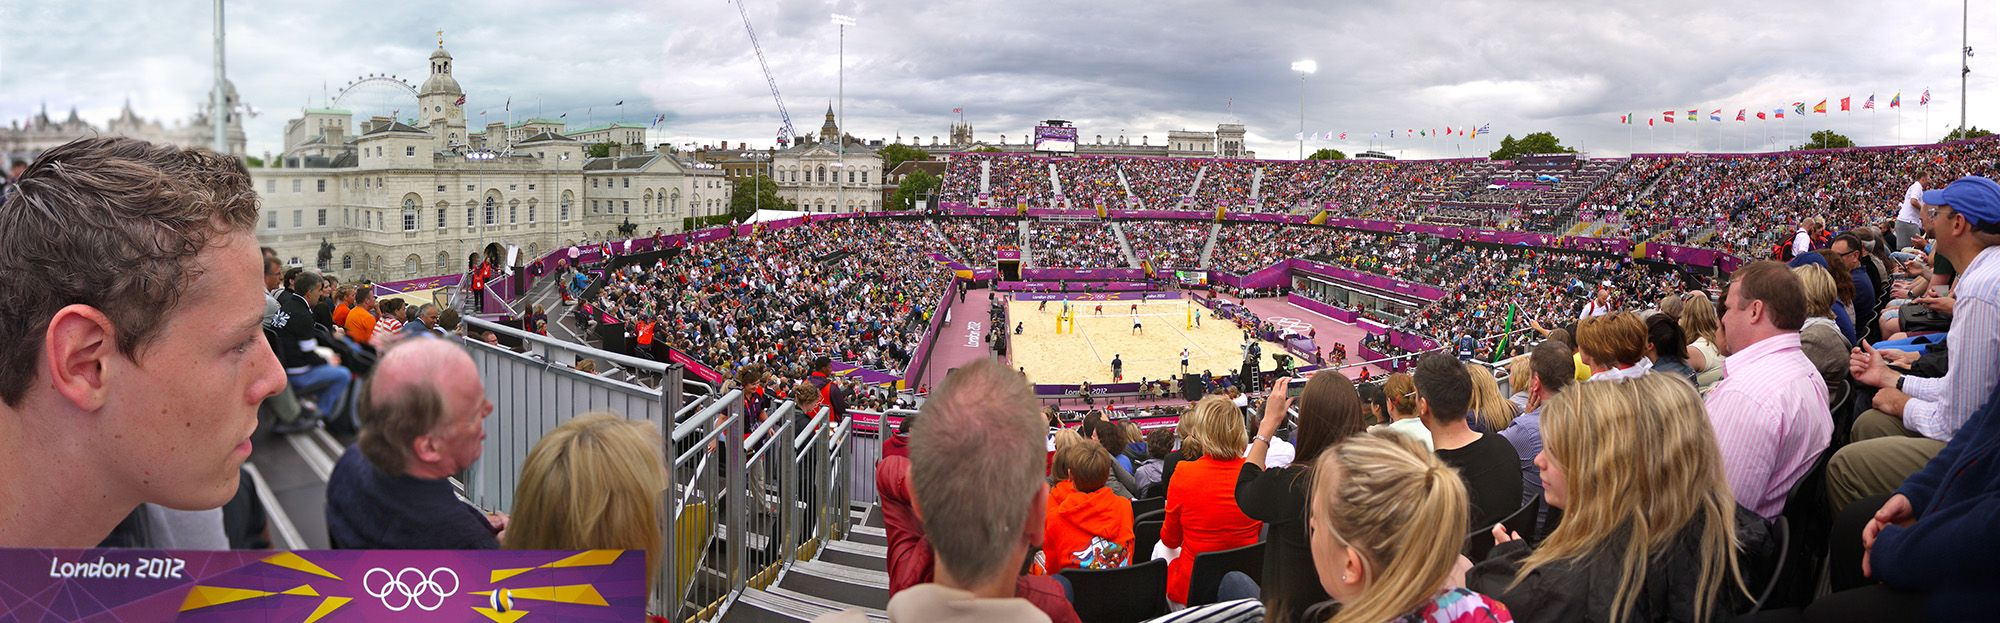 London 2012, at the Olympics beach volleyball court with son Jurr (l). Huge stadium, seems even bigger after panoraming it in Photoshop.